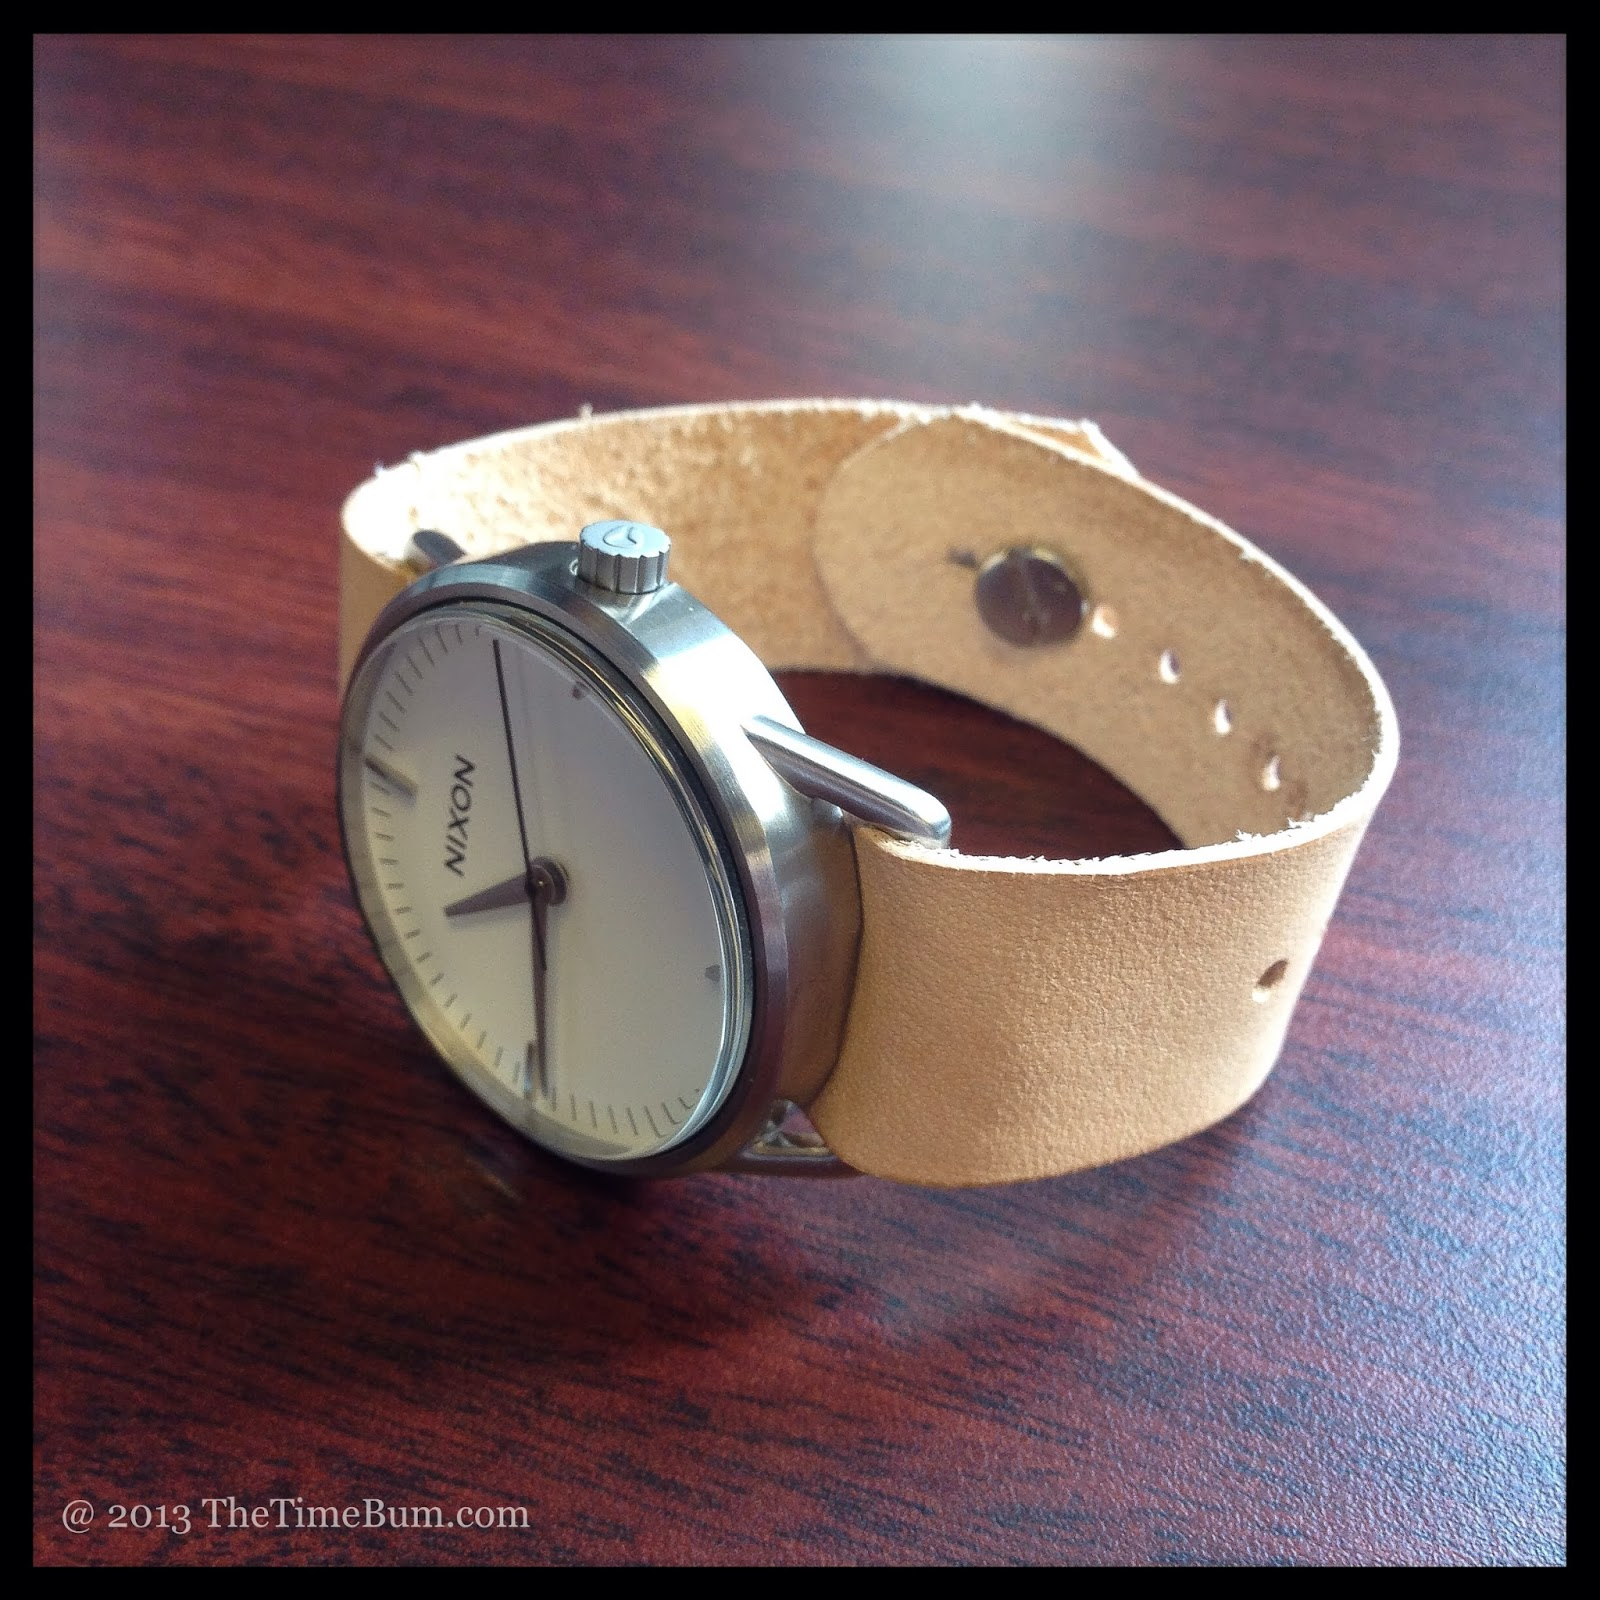 Grants button stud strap, Nixon Mellor